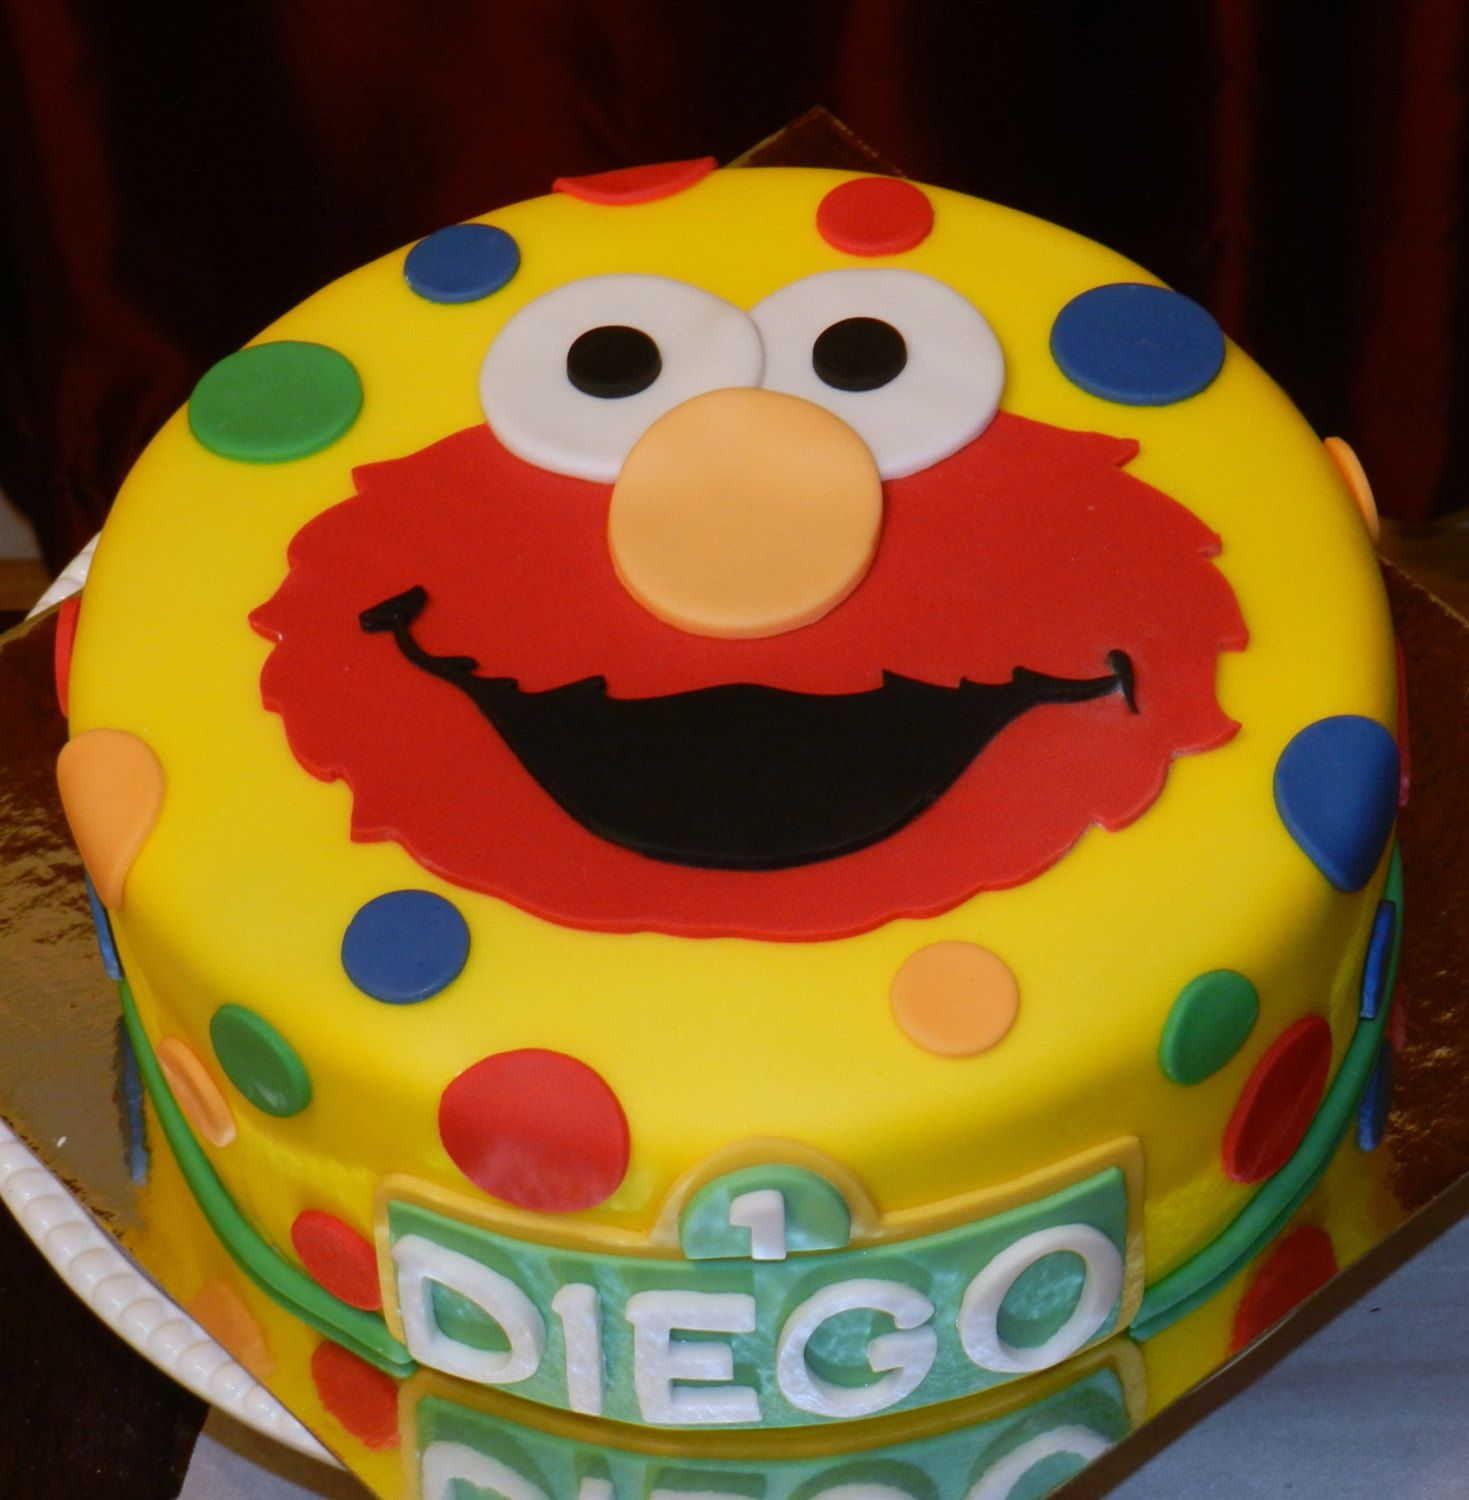 Edible Elmo Cake Topper By Sweetcreationsbygigi On Etsy